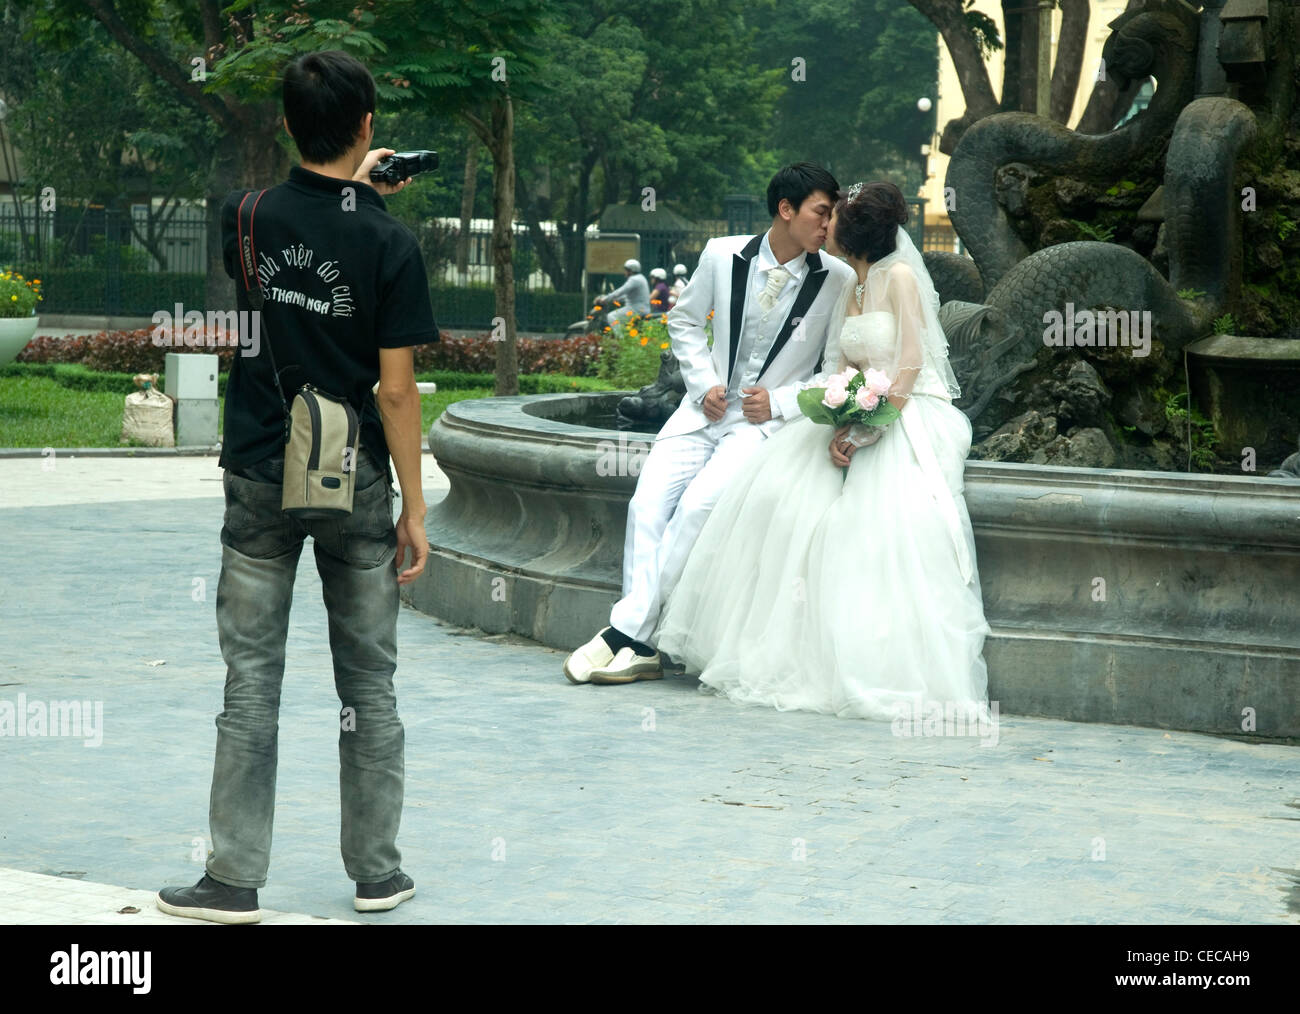 A young couple in glamorous wedding clothes poses for photos in Hanoi although this is not their wedding day - Stock Image